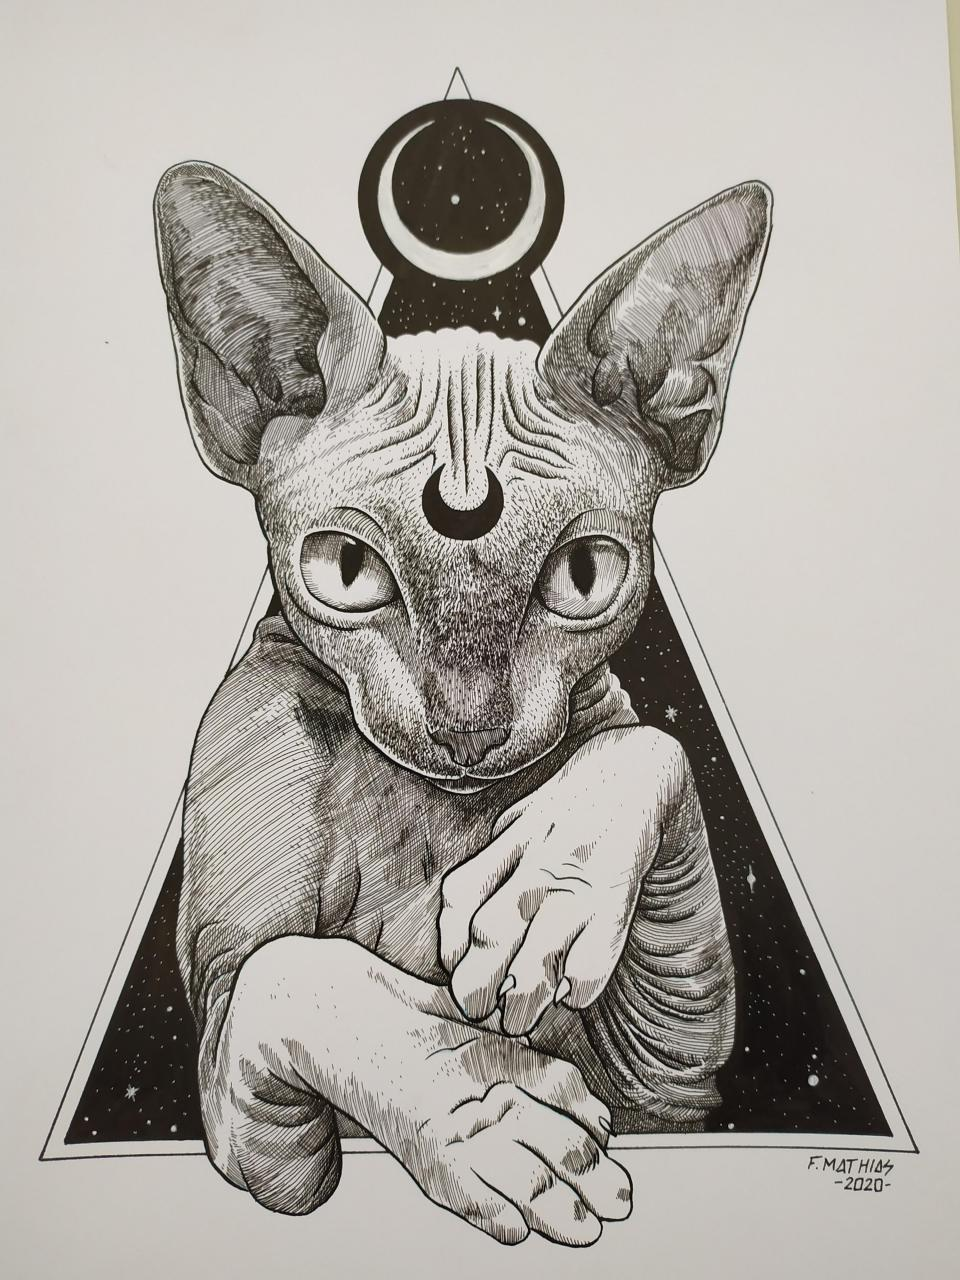 Luna the cat. I'm open for commissions, if you're interested DM me.